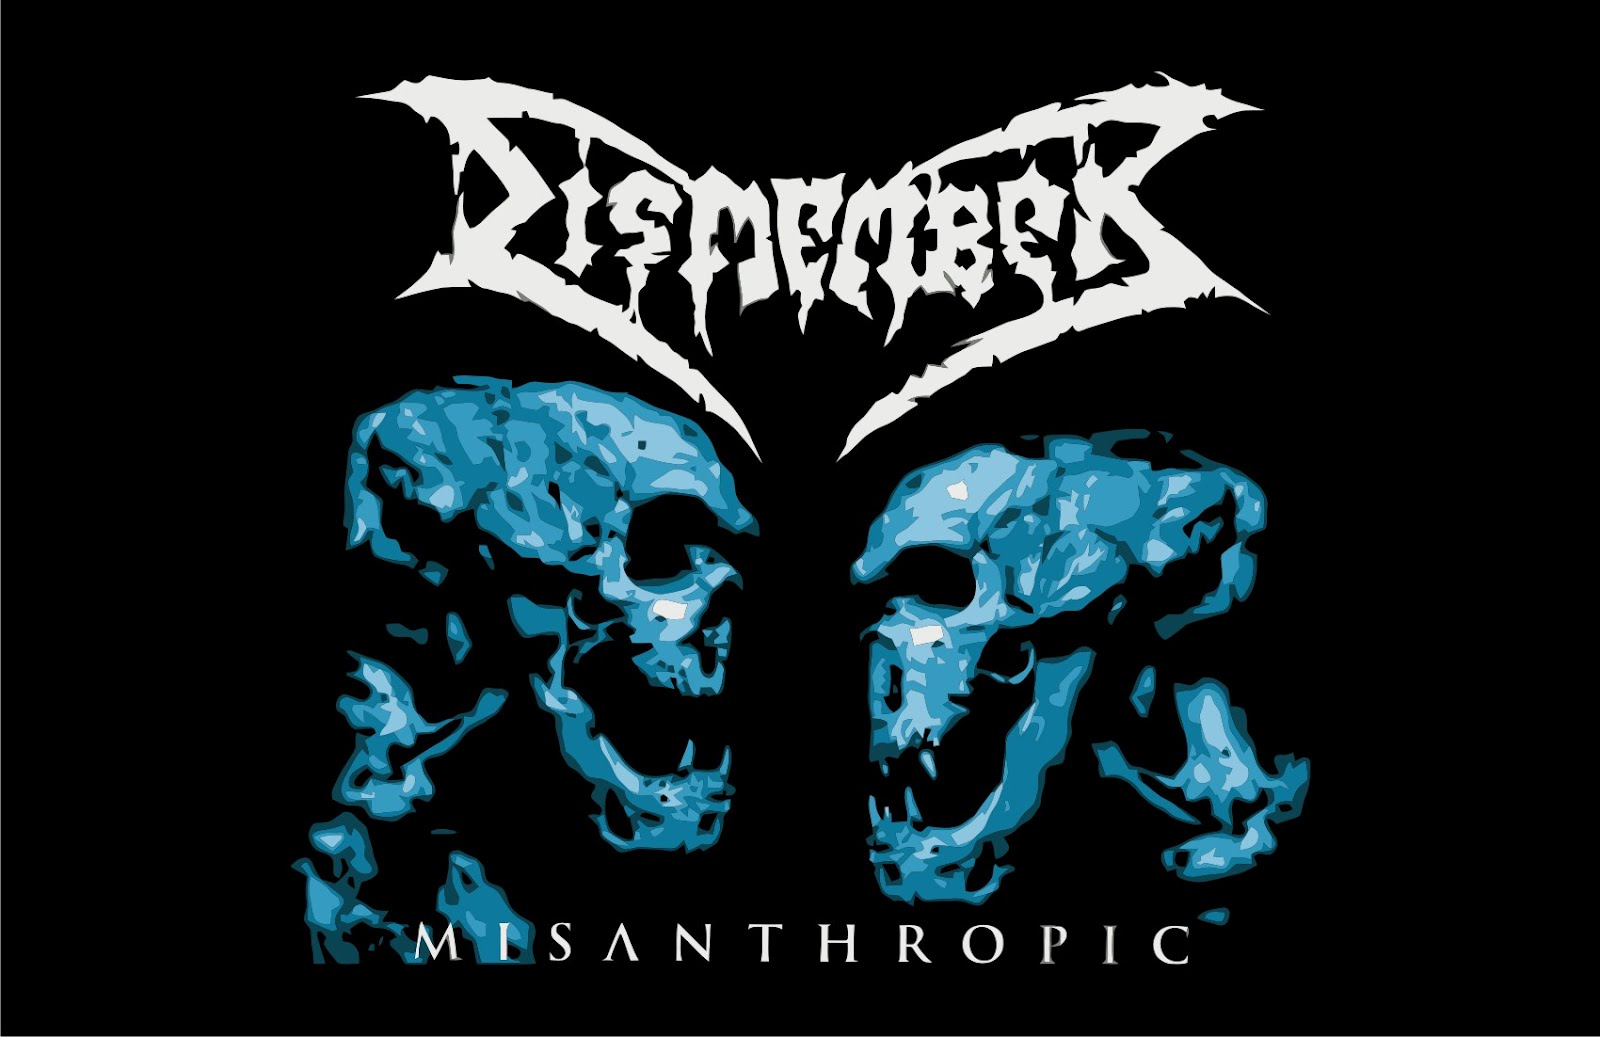 dismember-misanthropic_front_vector